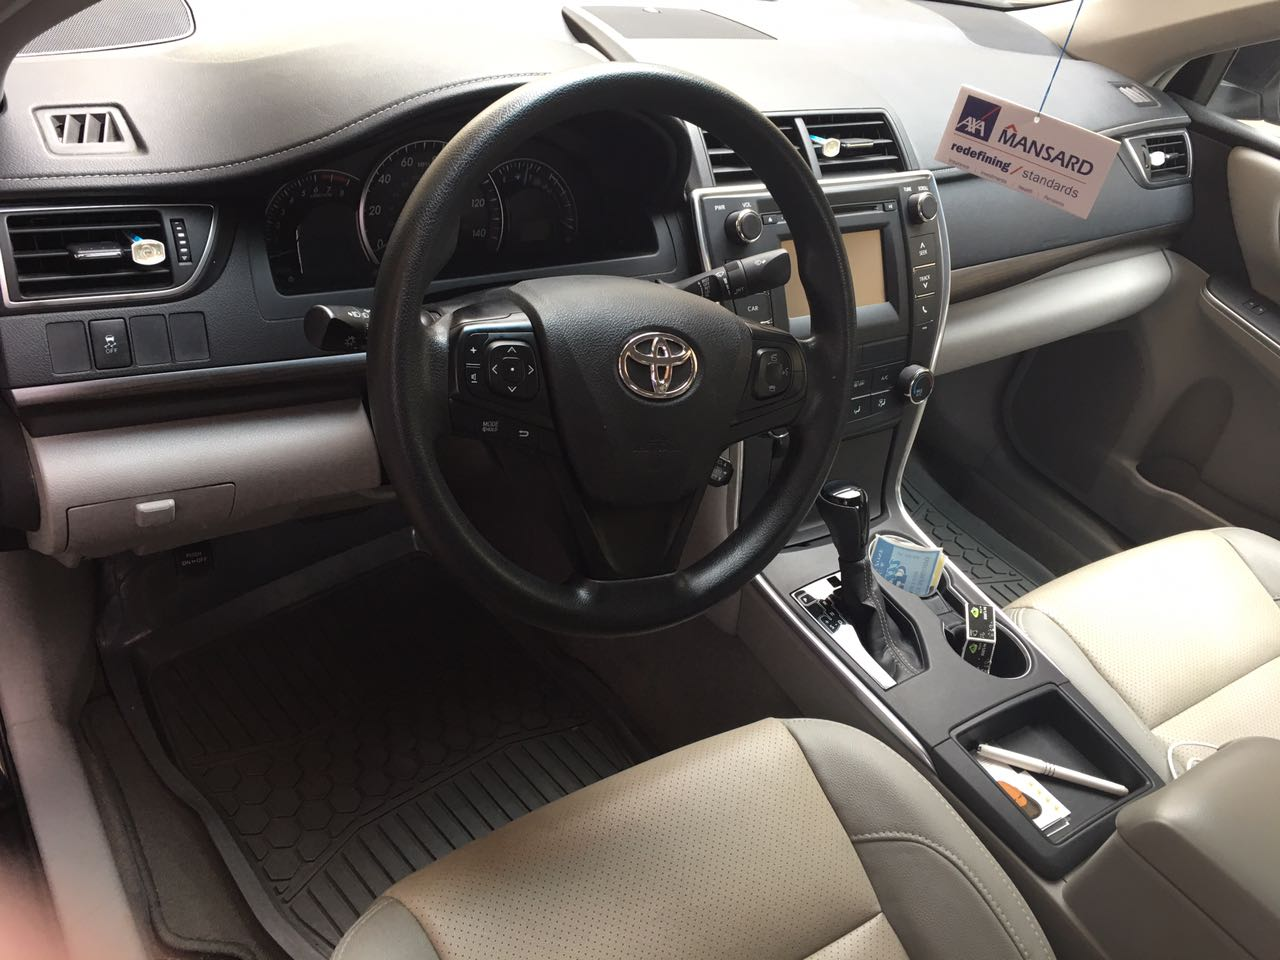 brand new camry price all india launch bought 5months reg 2015 toyota le